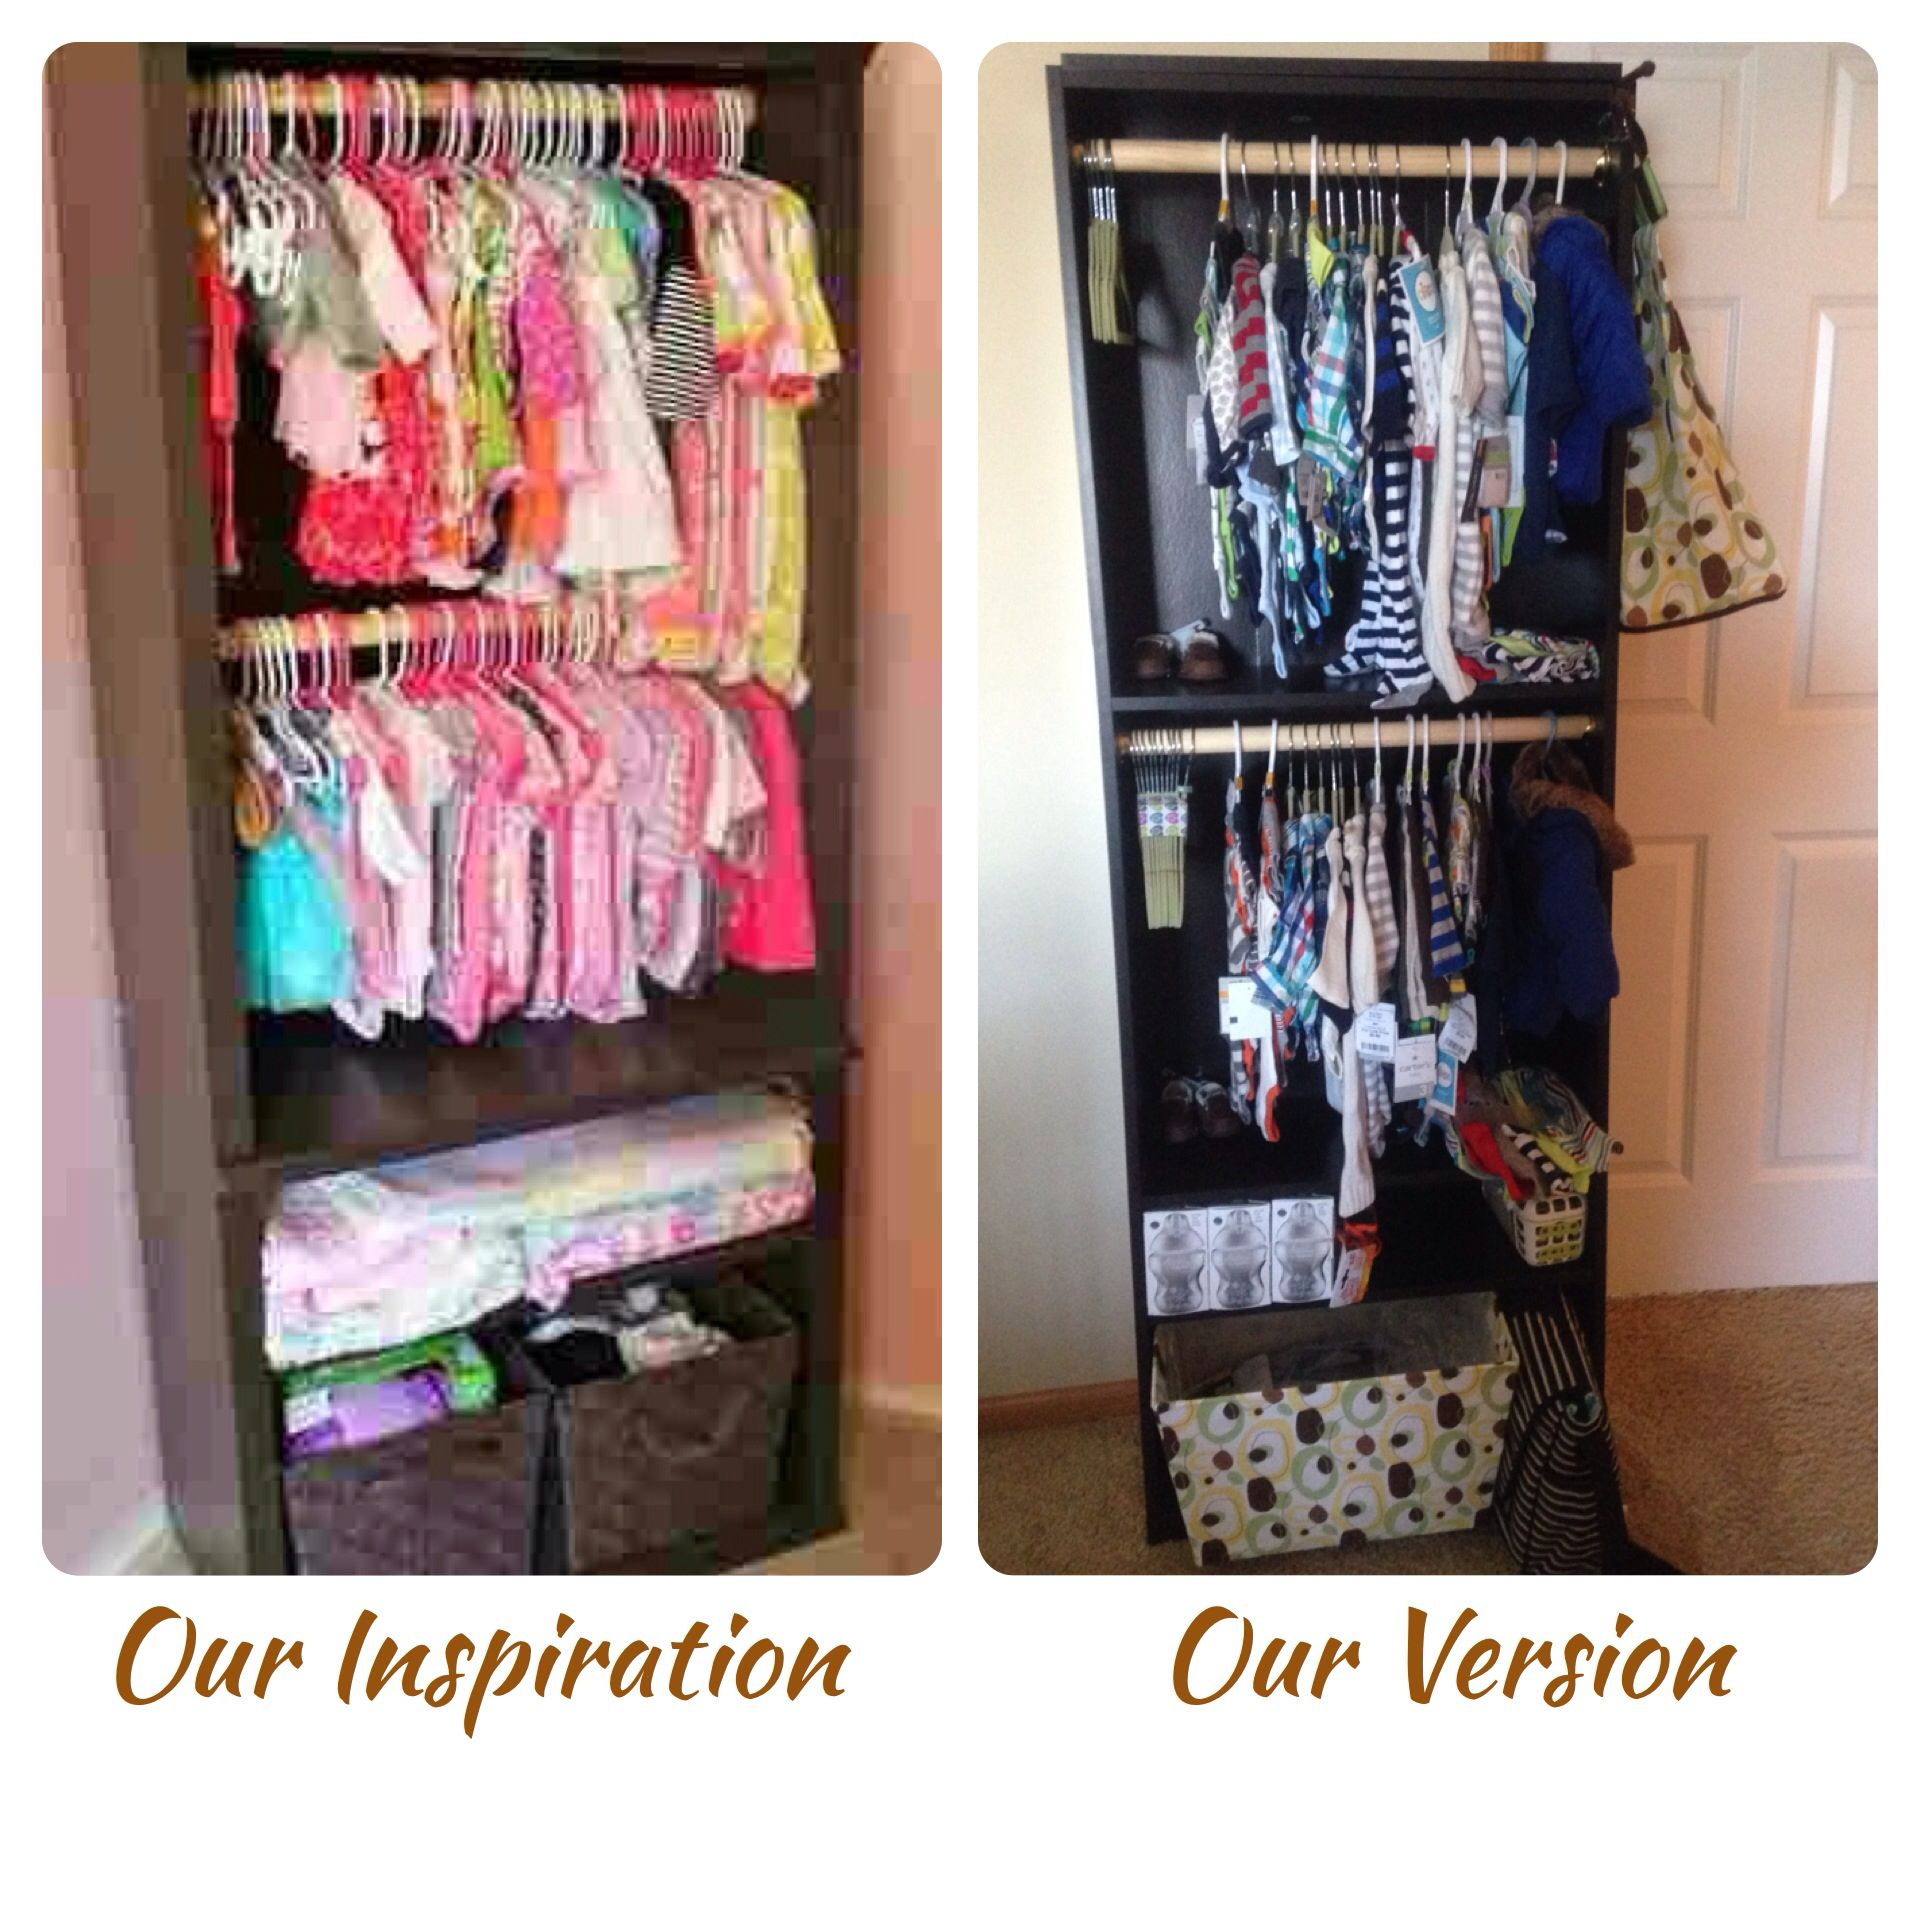 pin by andrea cavanaugh on baby | pinterest | diy baby, small spaces